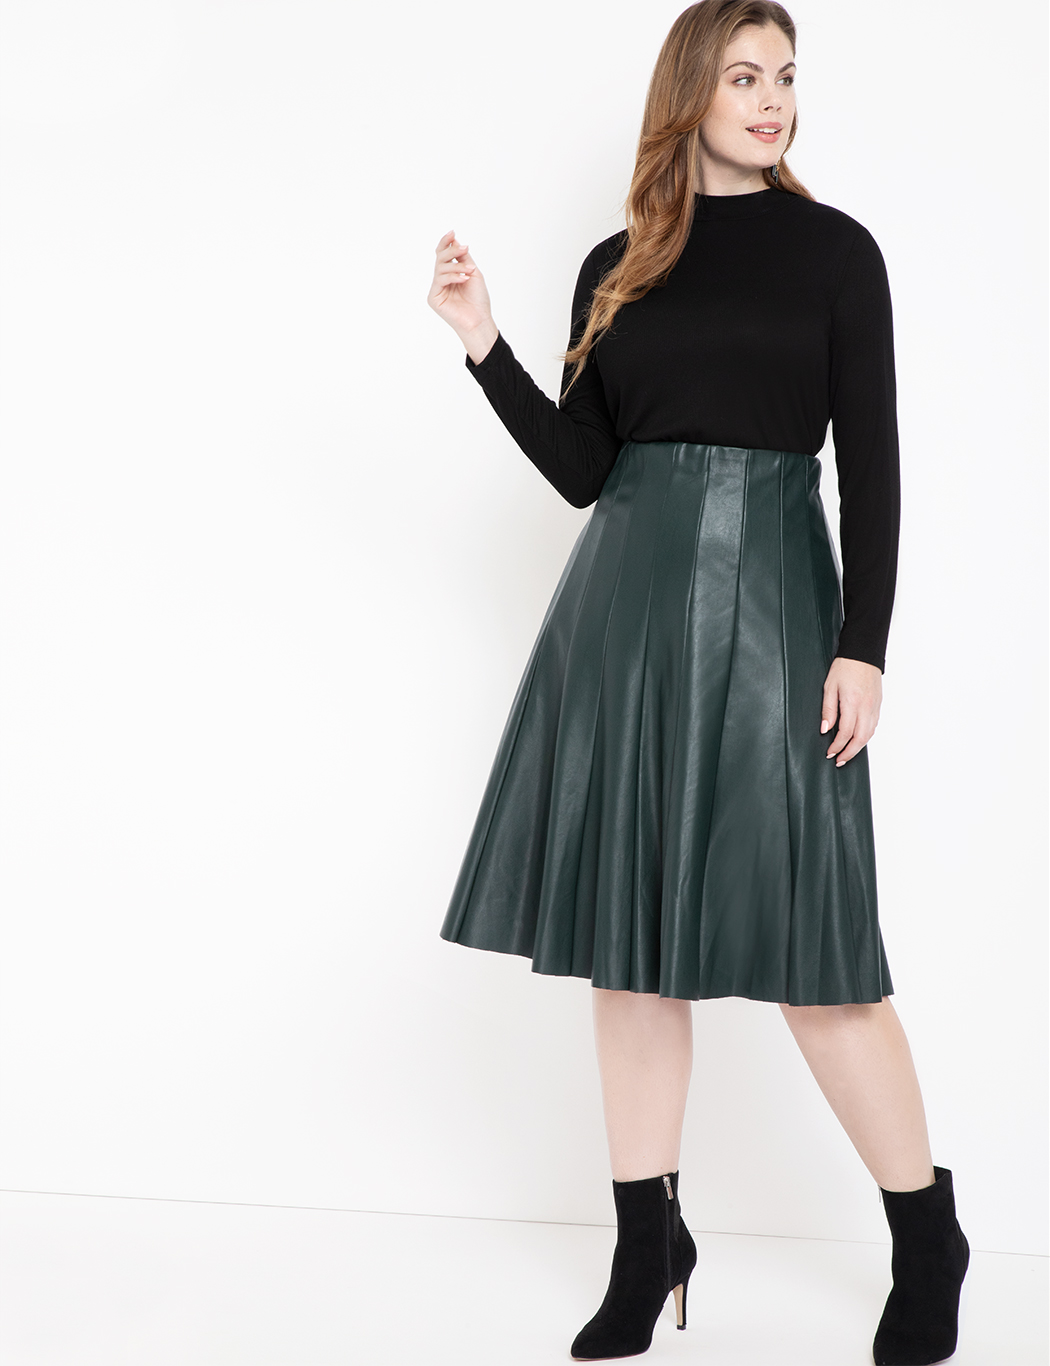 Faux Leather Trumpet Skirt | Women\'s Plus Size Skirts | ELOQUII